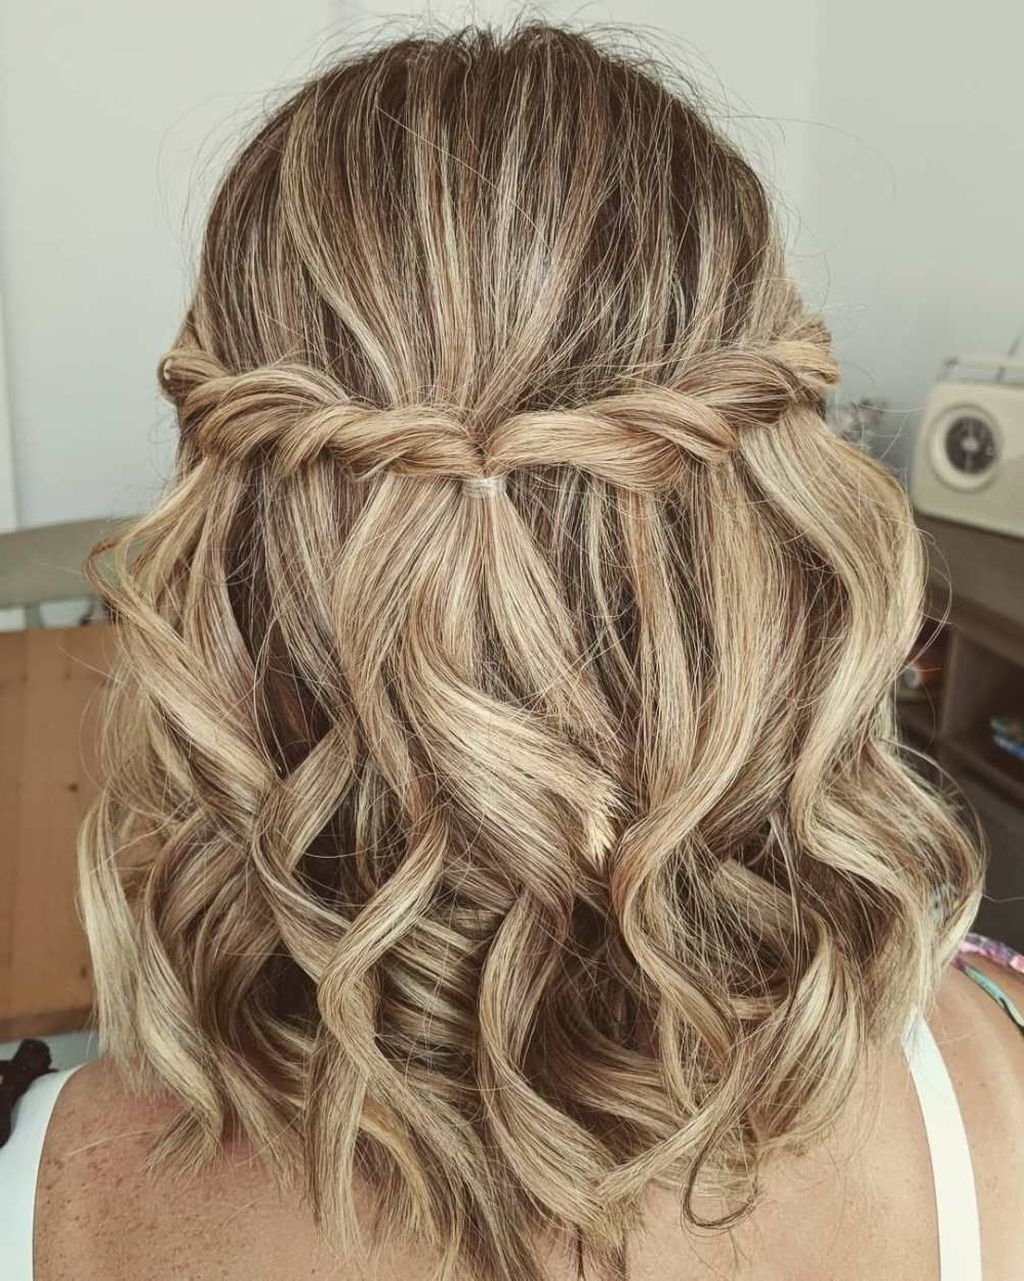 50 Newest Short Formal Hairstyles Ideas For Women | Updos 10+ Cute Hairstyles For Medium Length Hair For Graduation